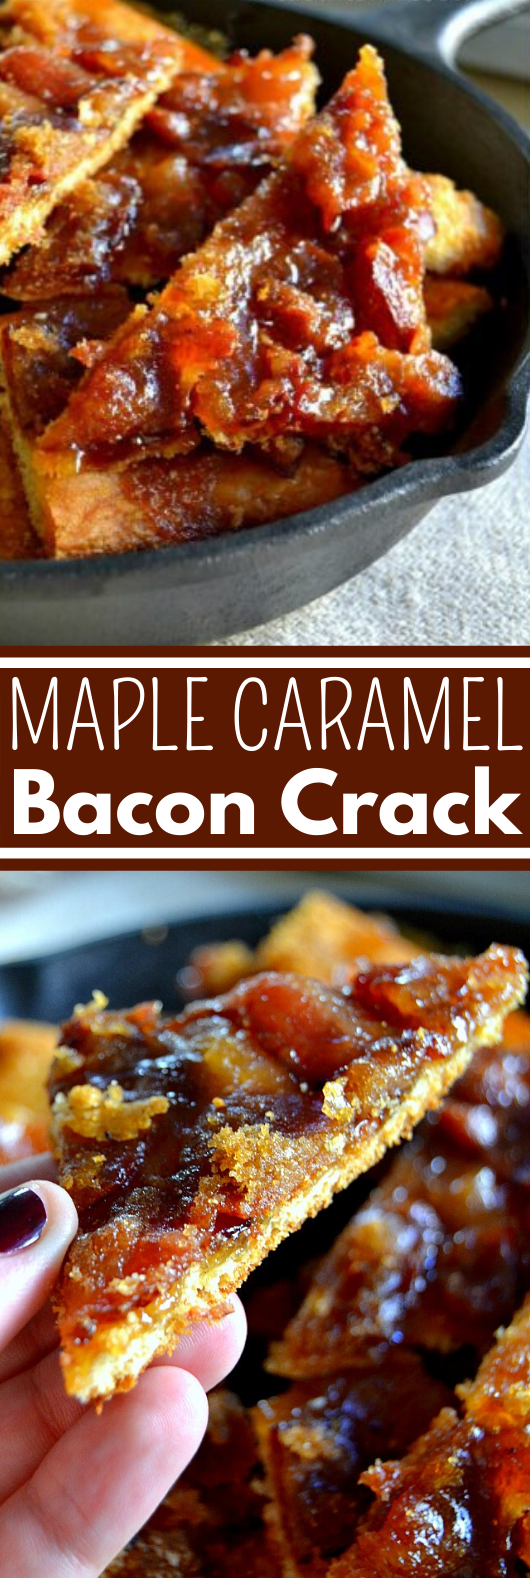 Maple Caramel Bacon Crack #easy #appetizers #fingerfood #party #bacon